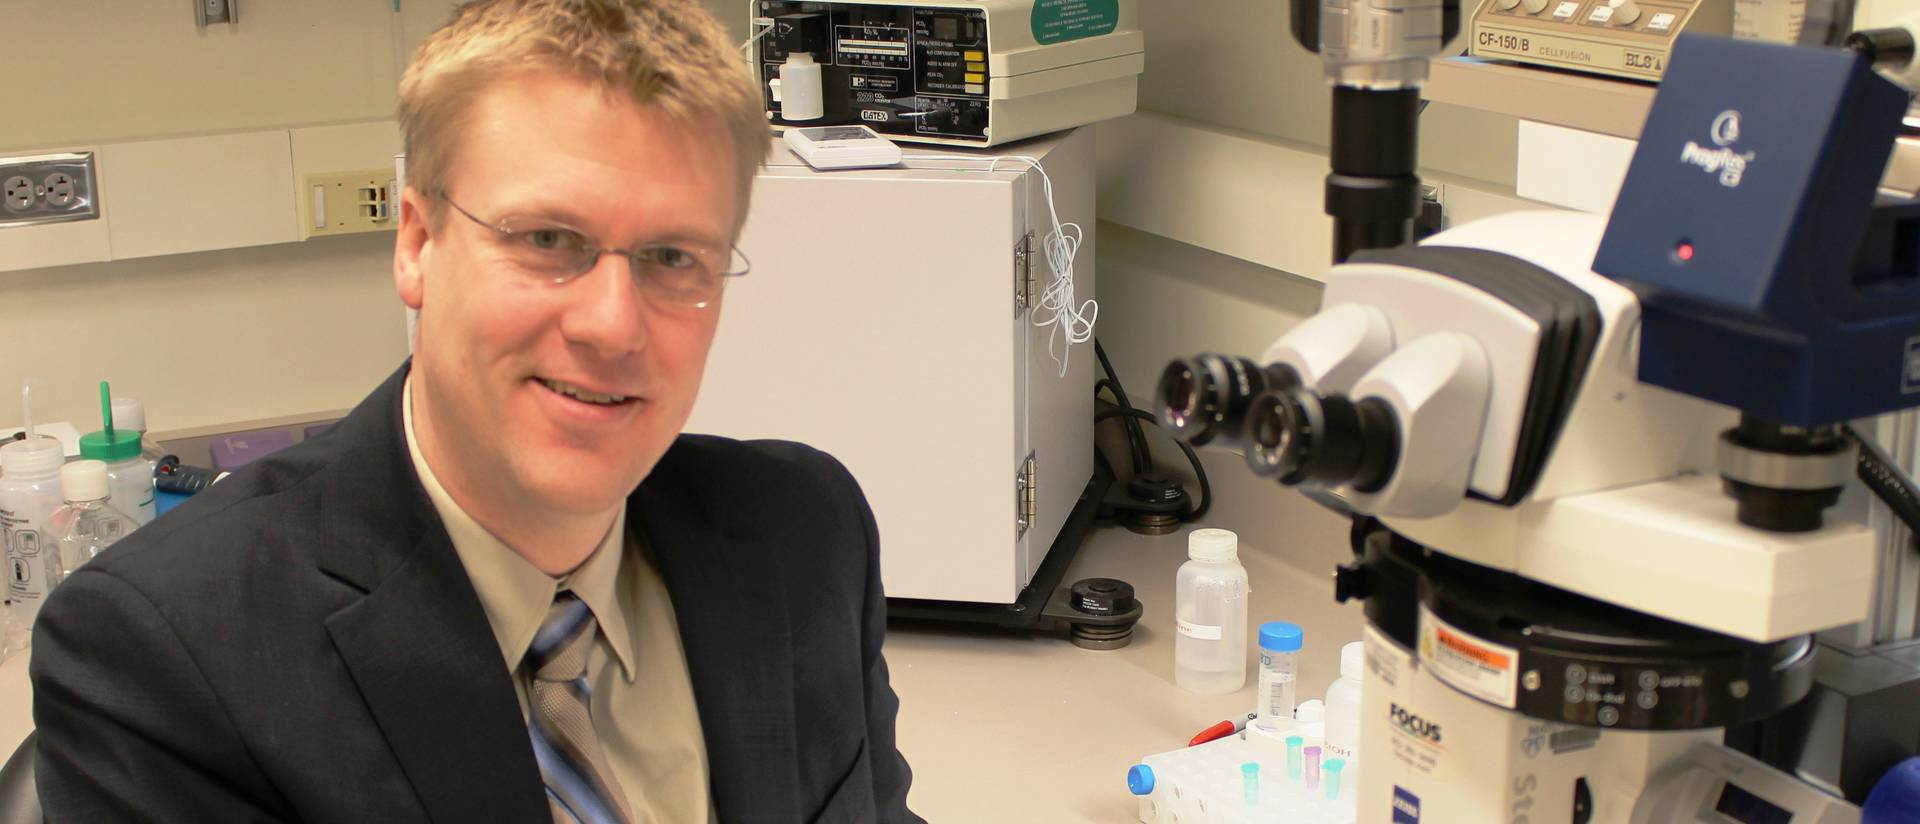 Dr. Timothy Nelson, a 1998 UW-Eau Claire biochemistry/molecular biology graduate, visited campus in December 2012  to talk with UW-Eau Claire students about internship opportunities and his cutting-edge research in regenerative medicine at Mayo Clinic in